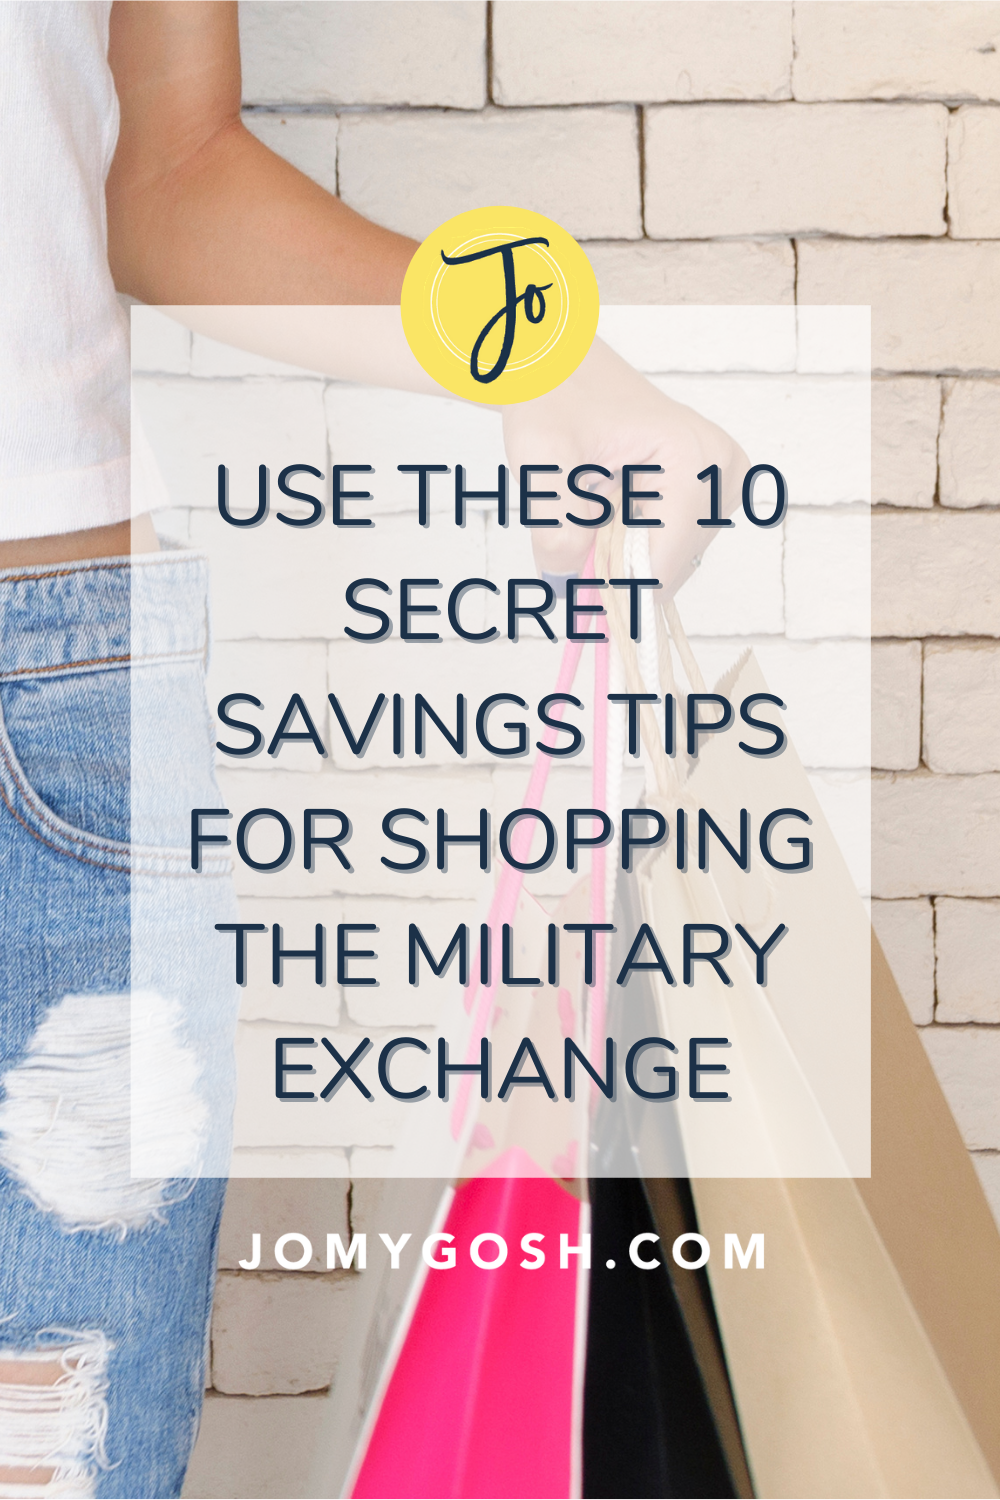 Can you save money shopping the NEX or PX? Sure! (If you know how to maximize your savings, that is.) Here's how to make the most of your military shopping trip. #military #militarydiscount #exchange #milspouse #militaryspouse #shopping #discounts #savingmoney #budgeting #milso #milsos #milspo #milspos #army #navy #airforce #marines #coastguard #ng #reserves